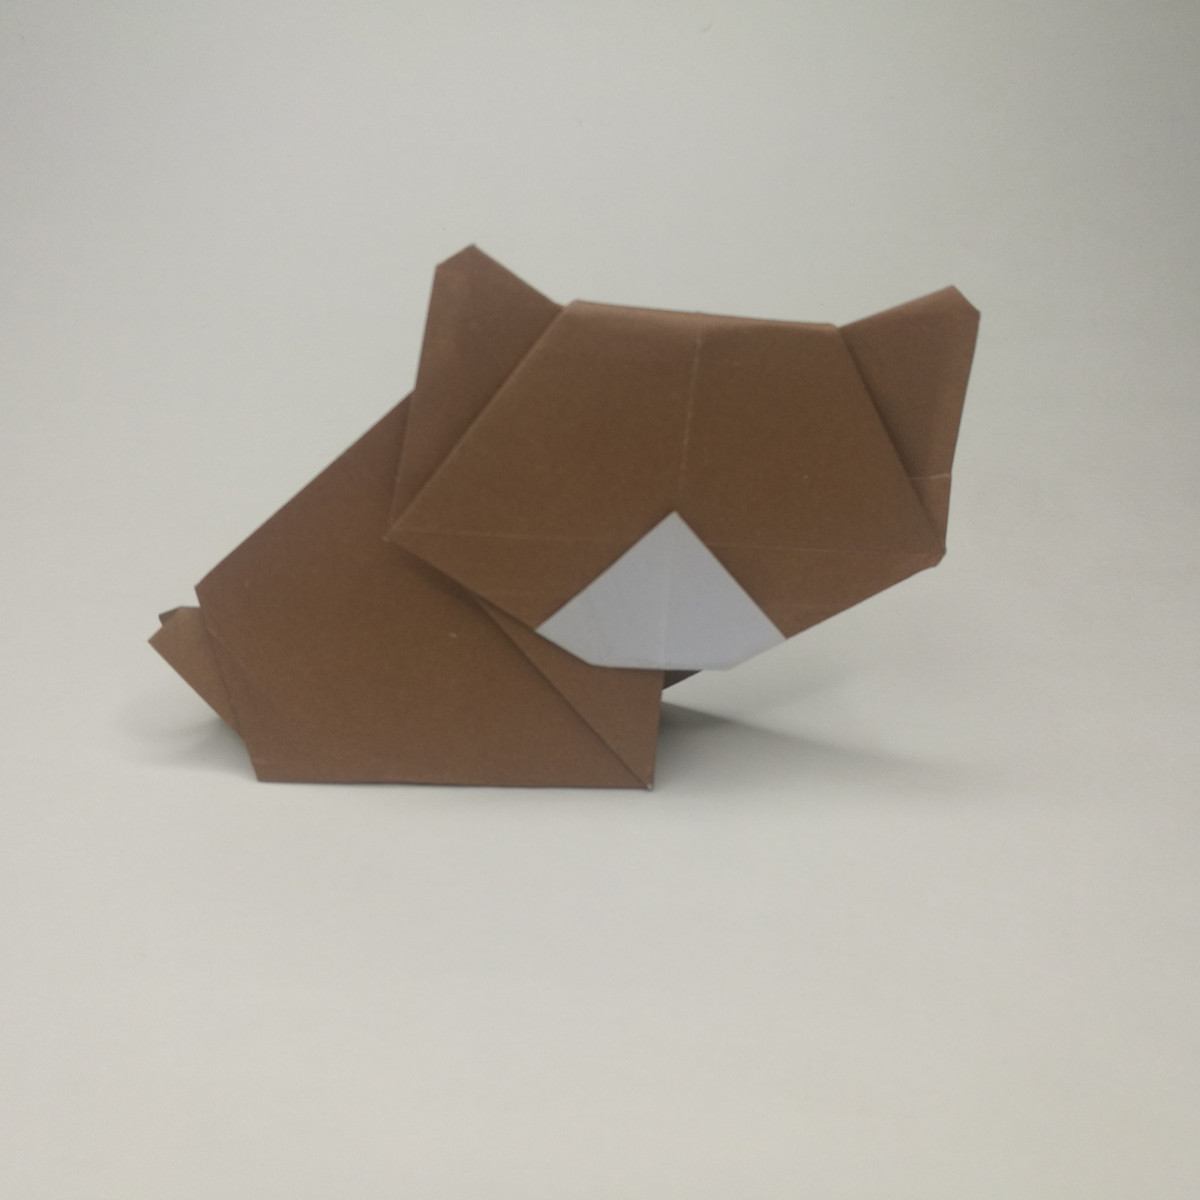 Easy origami bear instructions and diagram on